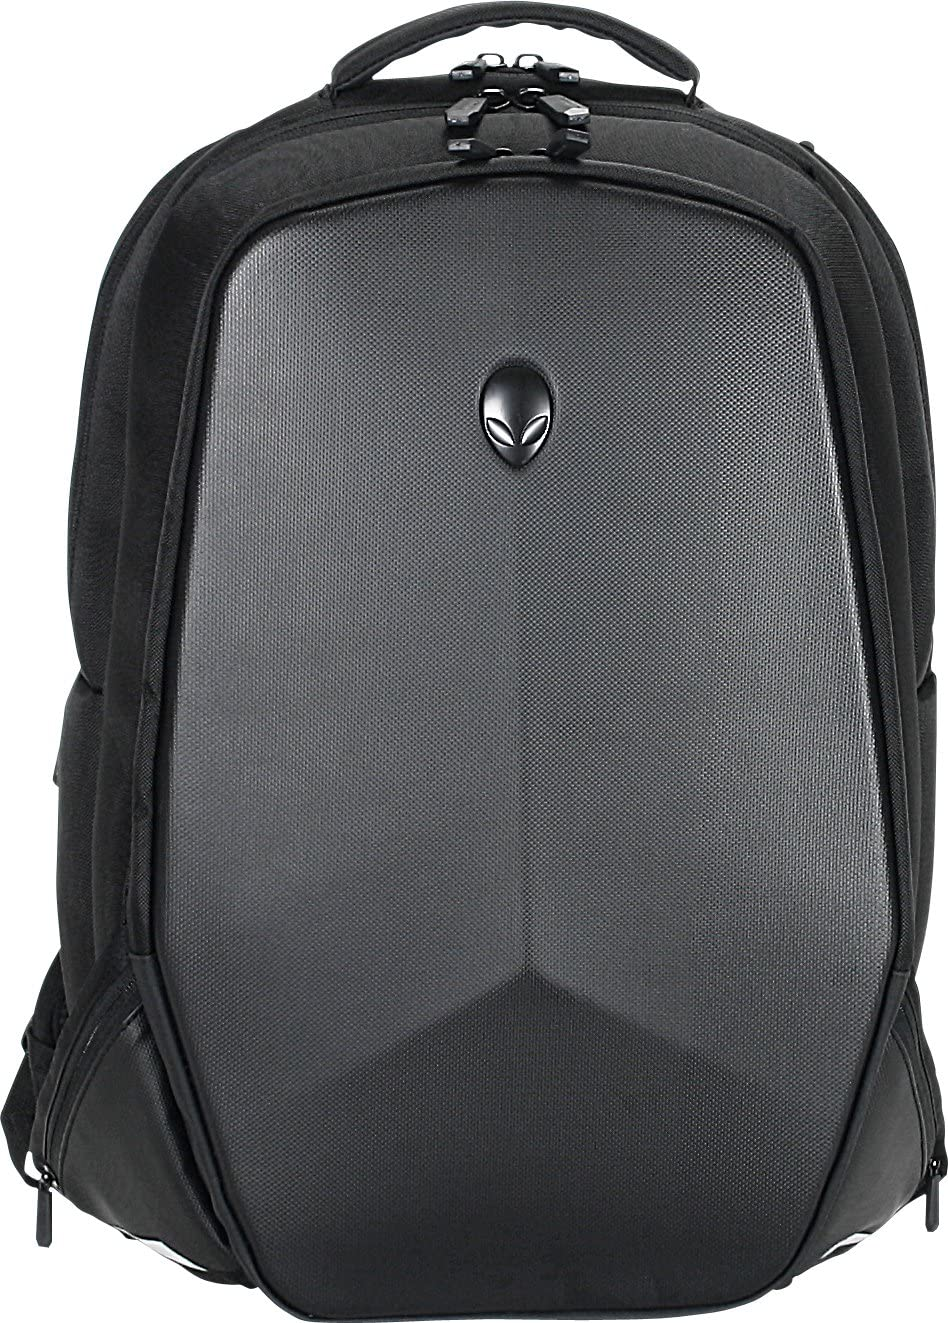 Alienware Vindicator Gaming Laptop Backpack 13-Inch/14-Inch, Black (AWVBP14)